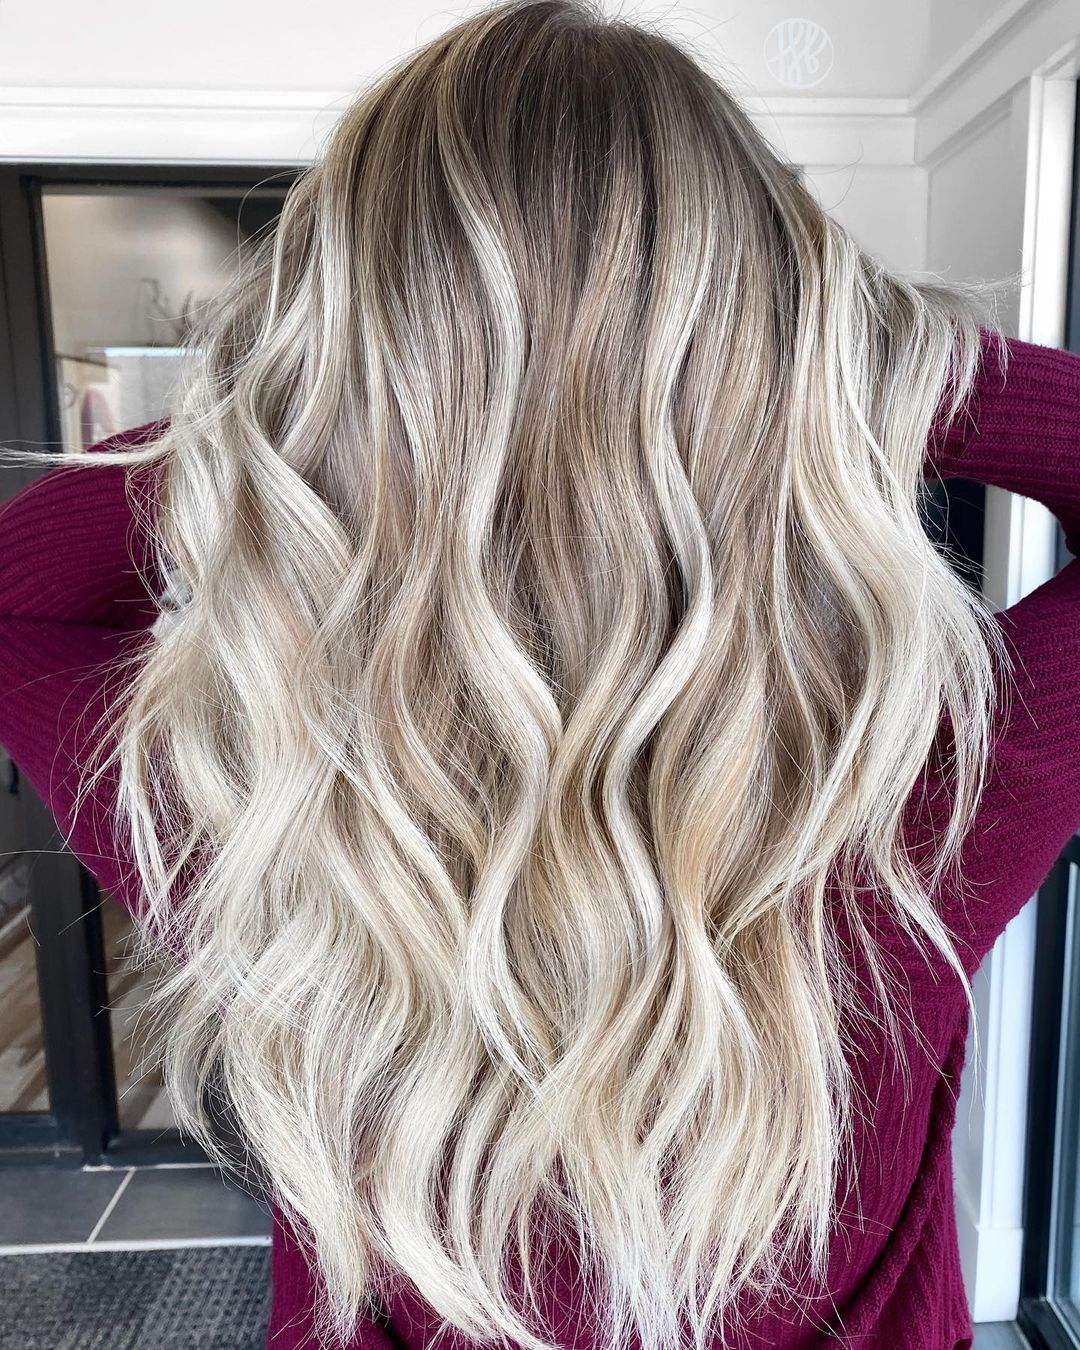 Sparkly Bright Blonde Balayage Hair